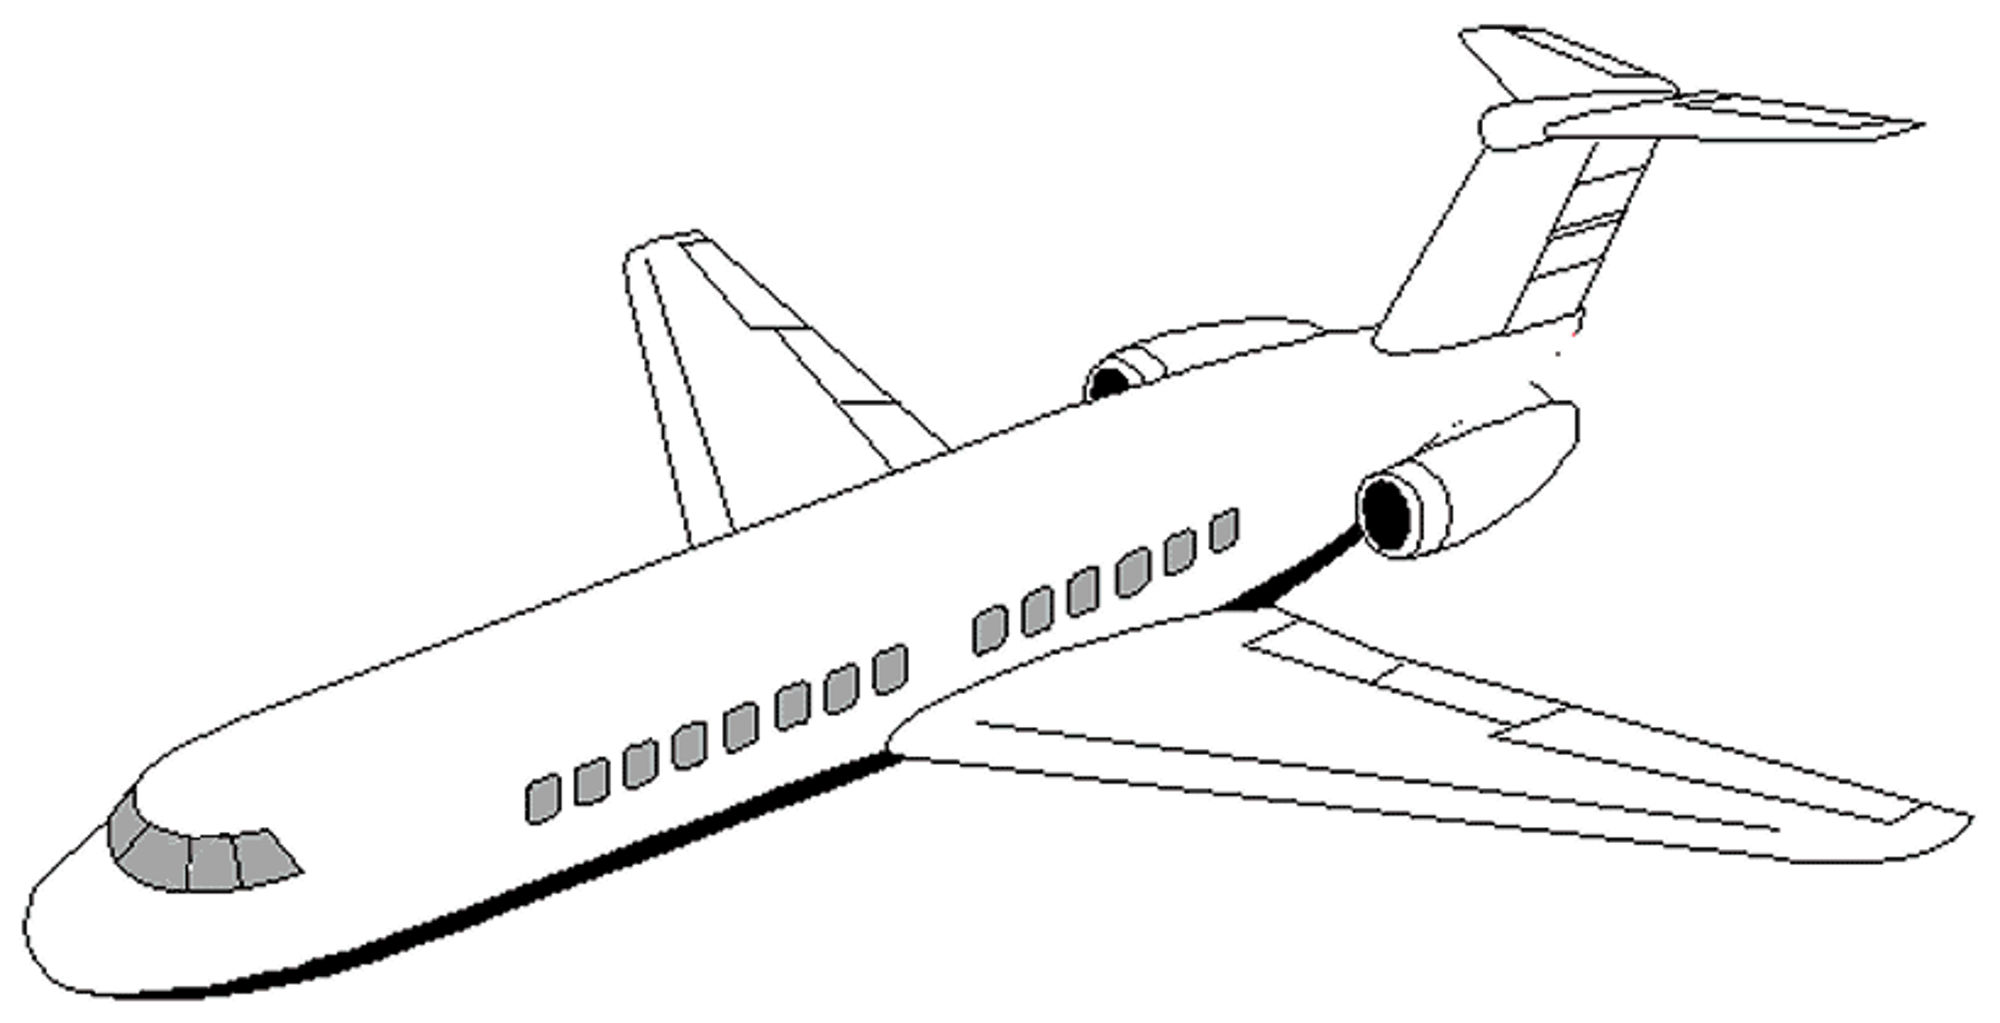 Coloring Pages Airplanes : Print download the sophisticated transportation of